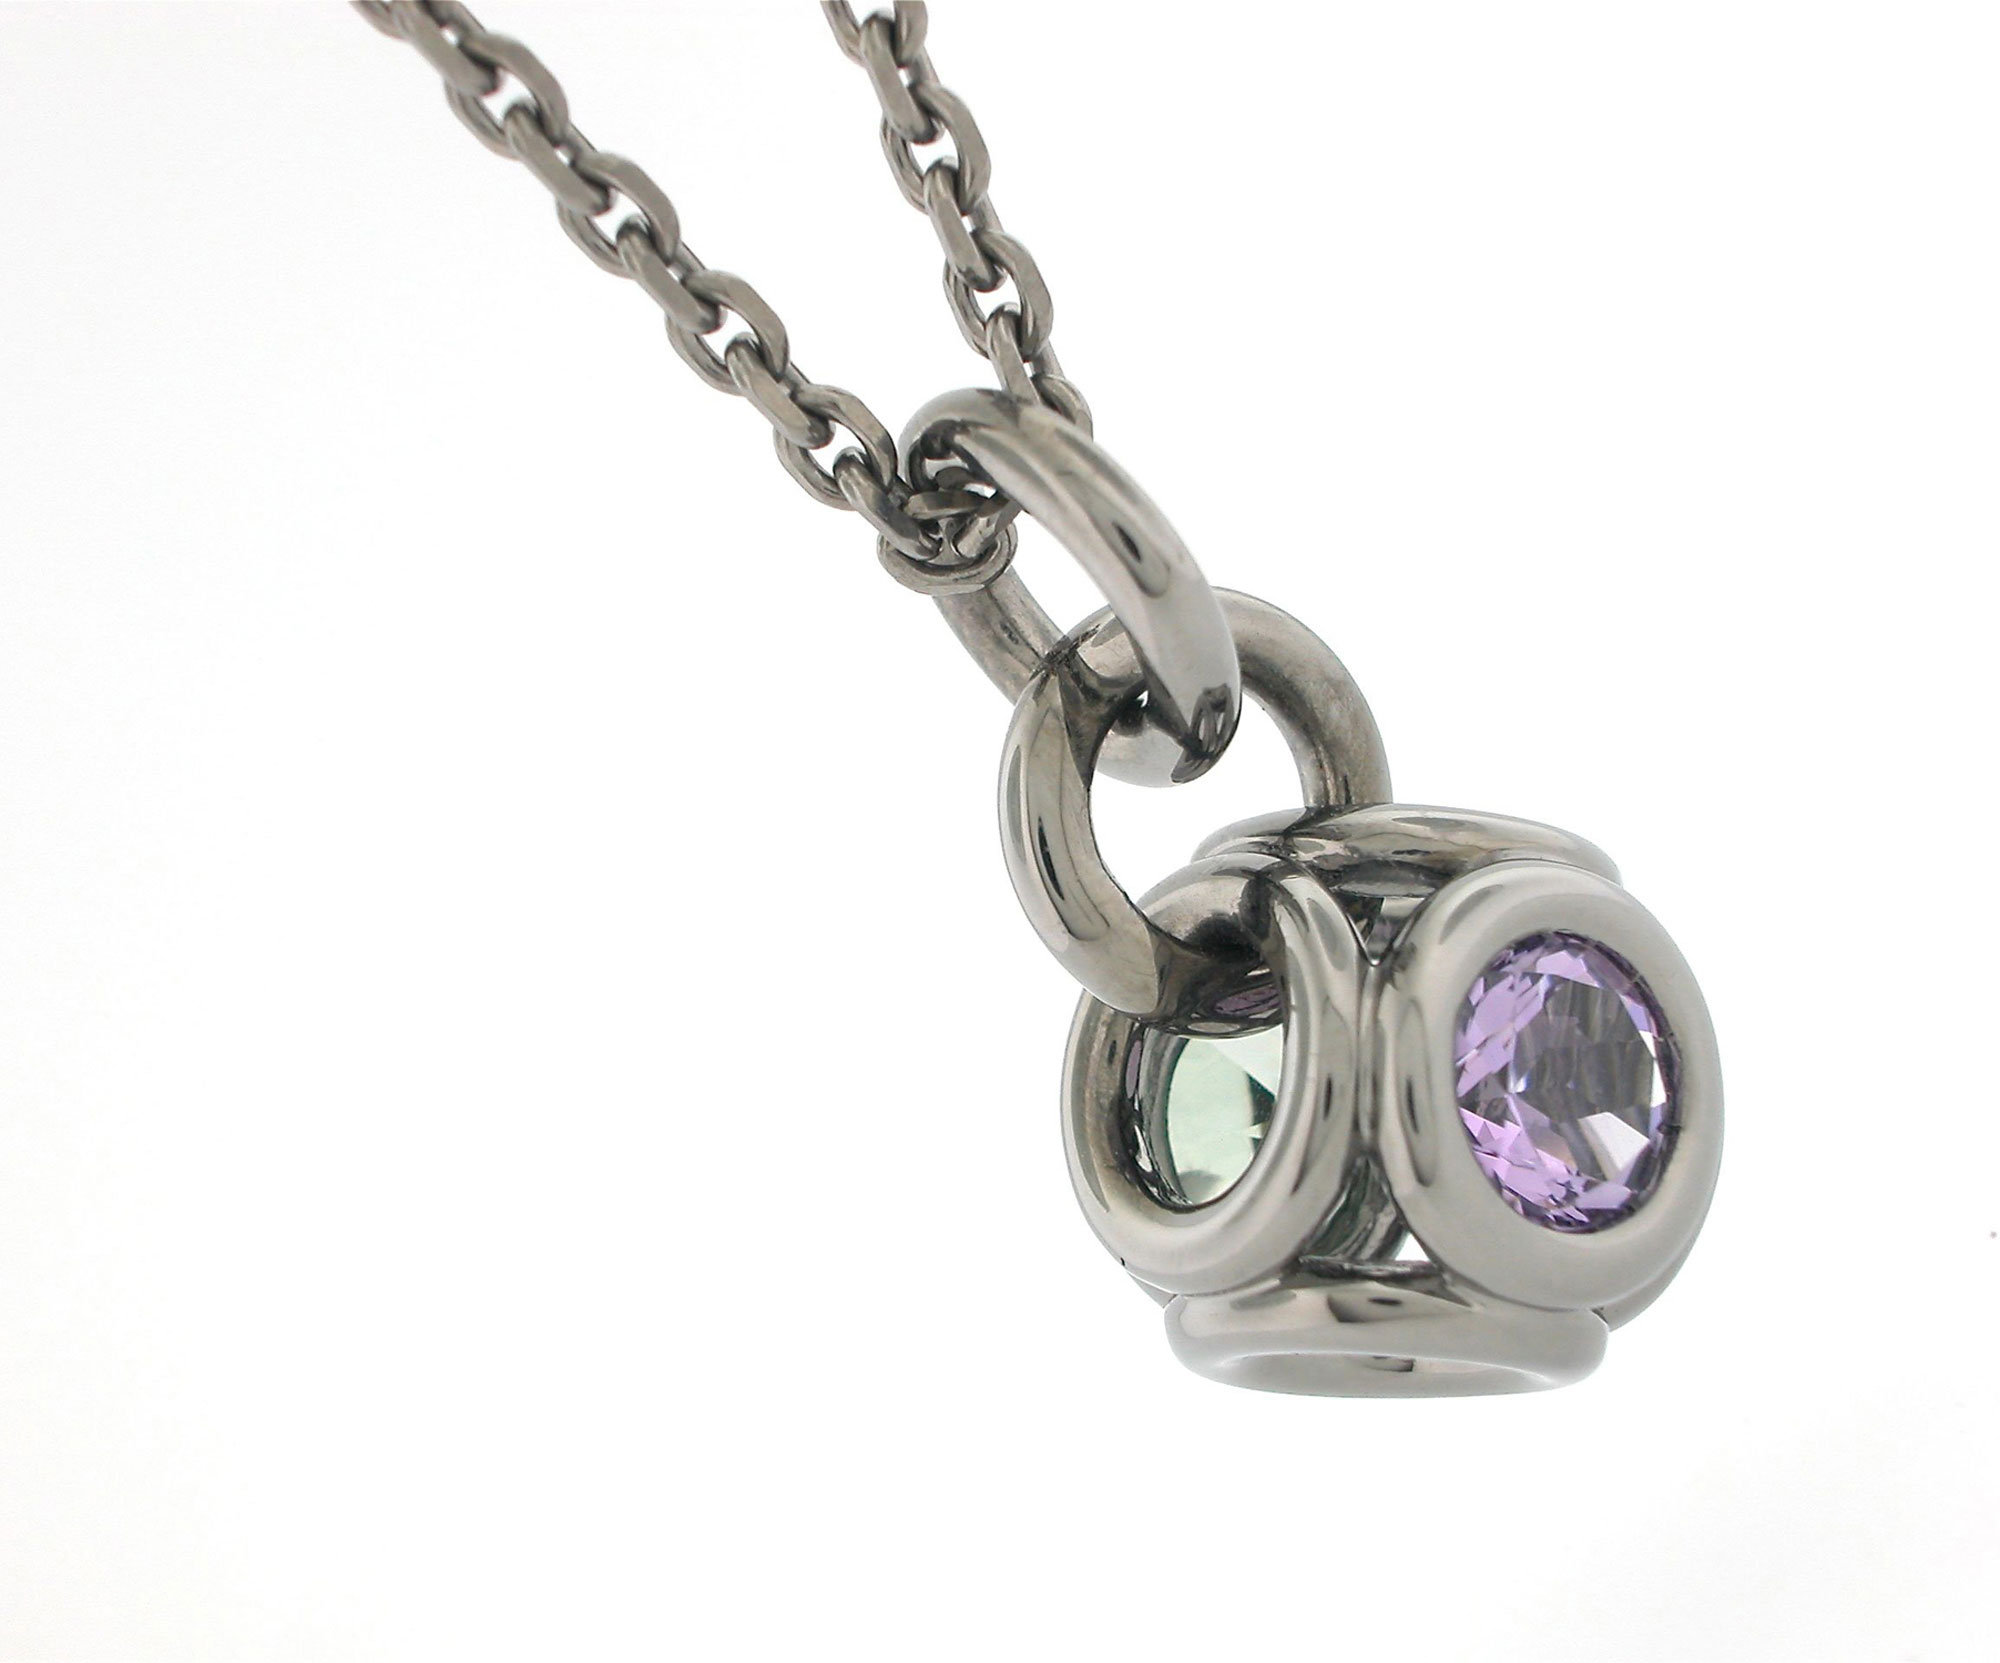 Torus Pendant 1 in Blackened Silver with Lavender and Green Amethyst